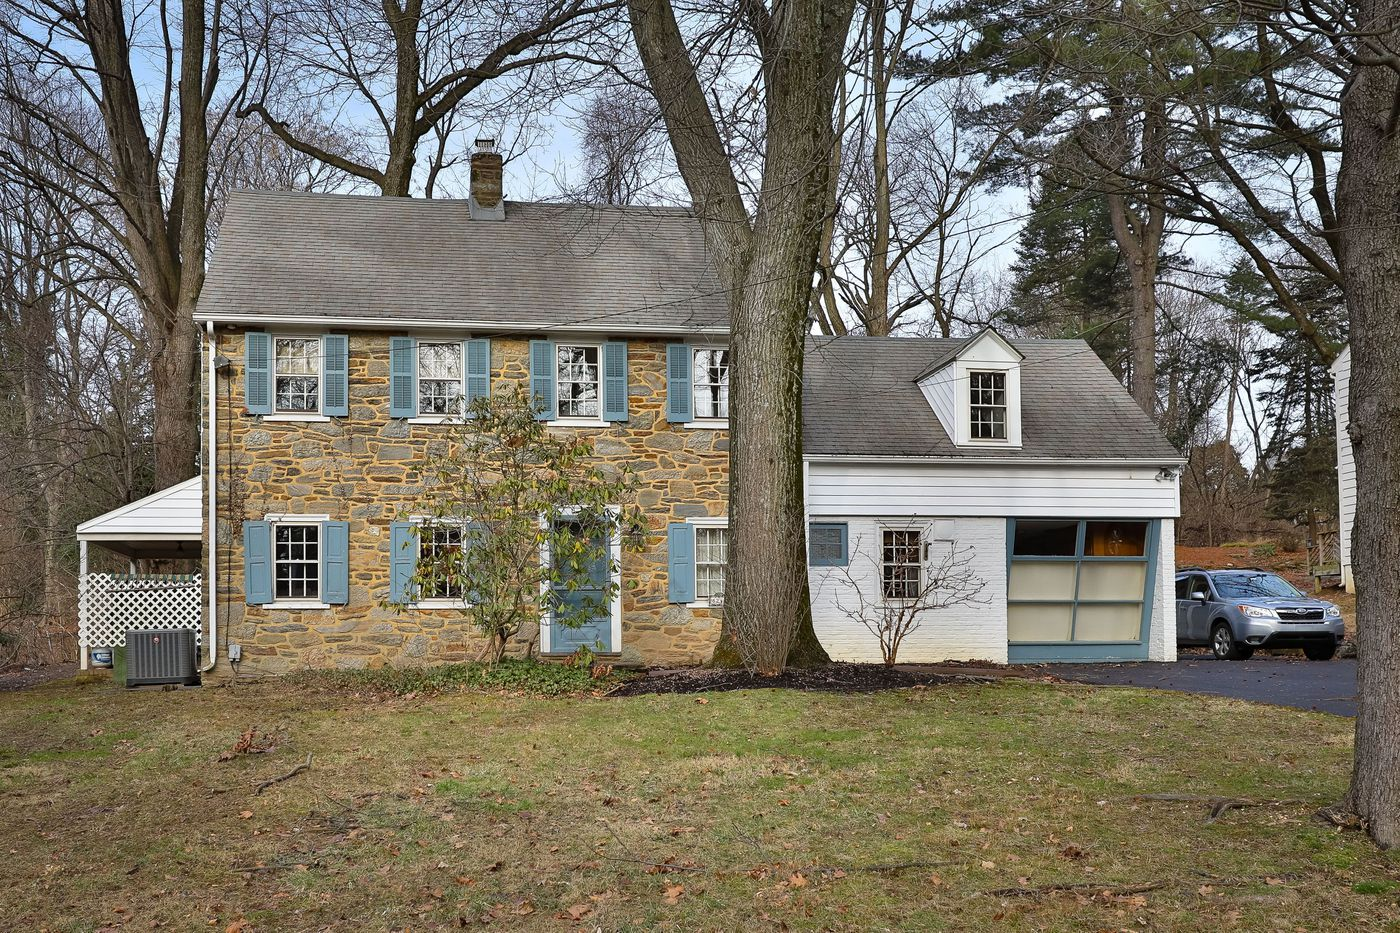 Malvern Bank House of the Week: Charming Stone Colonial in Elkins Park